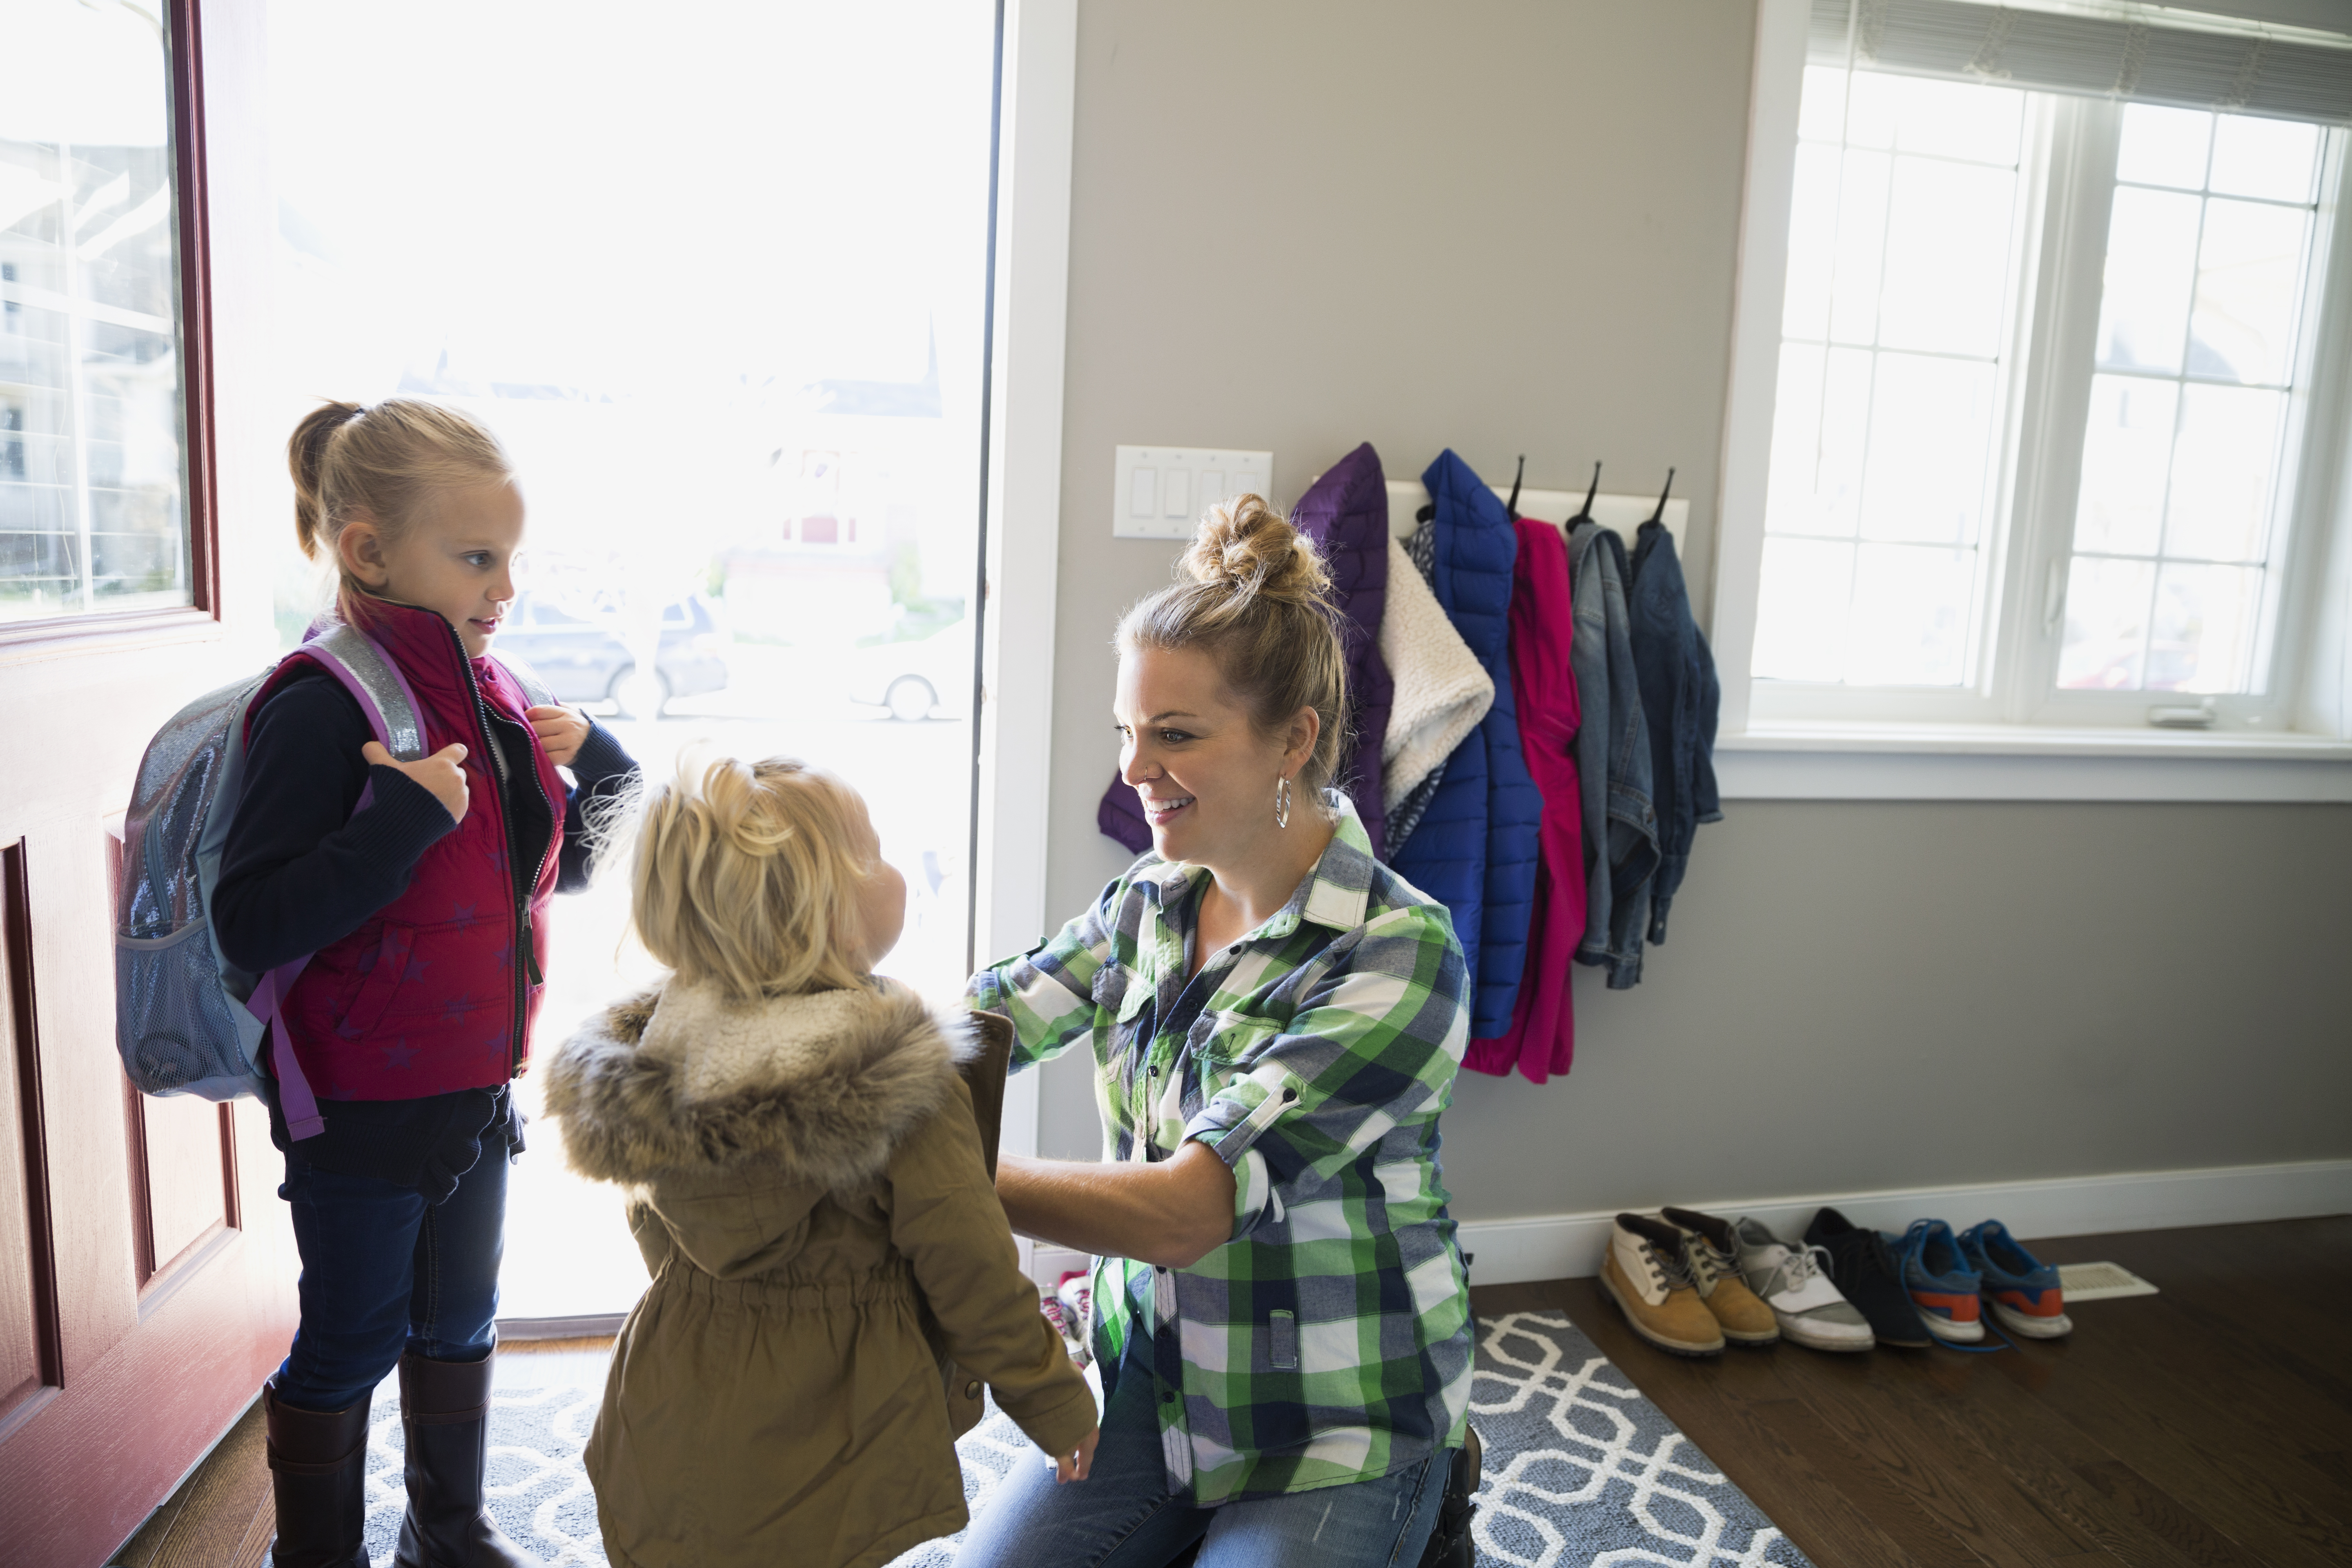 Mother preparing daughters for school at front door